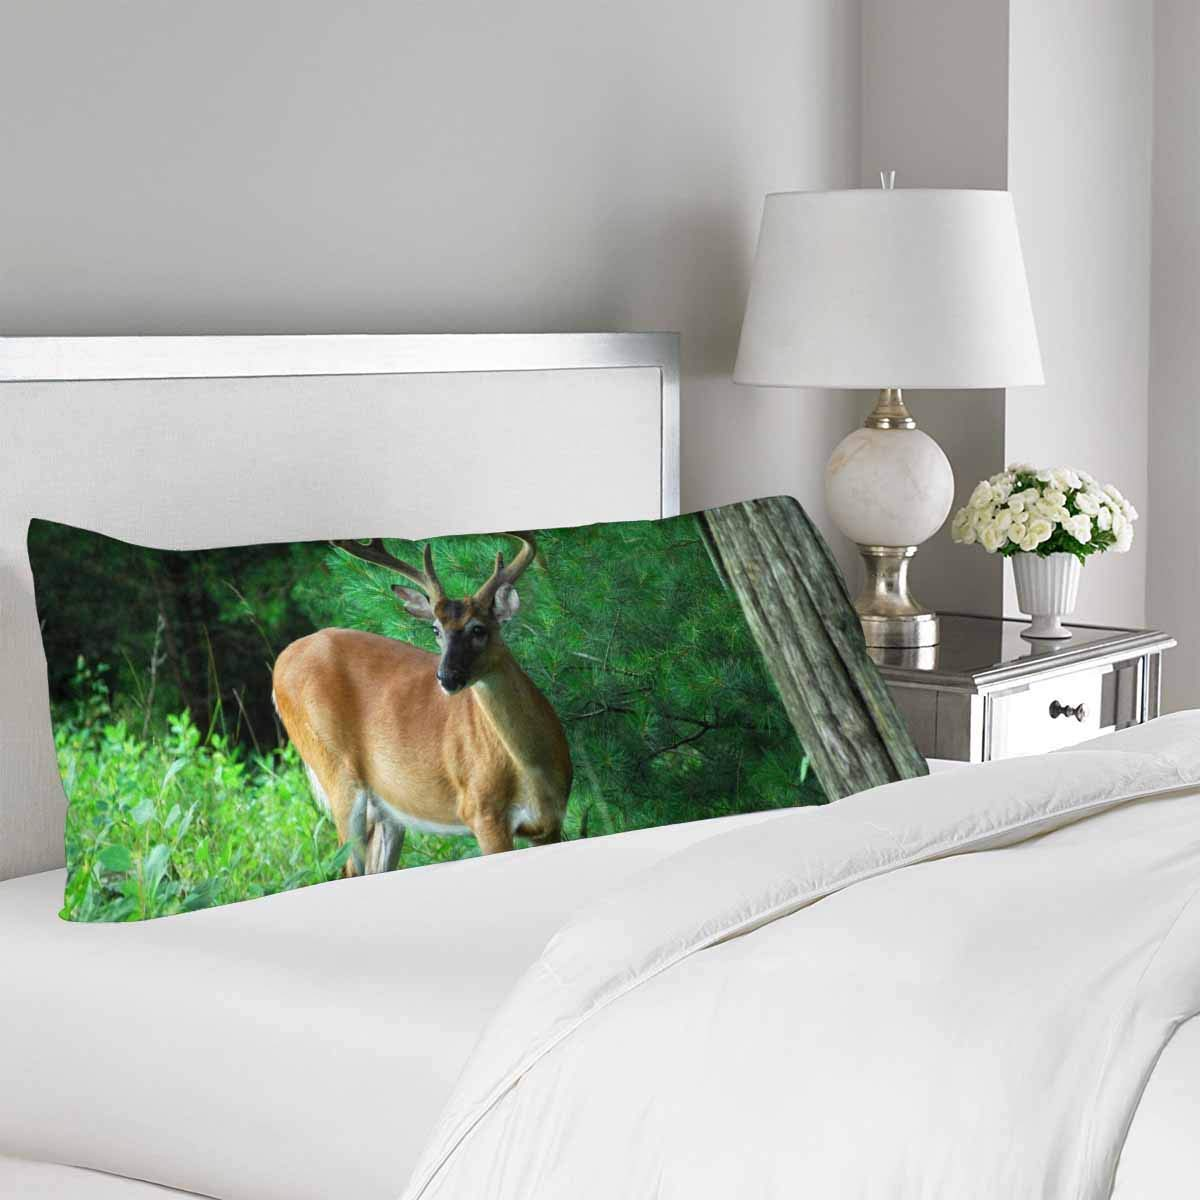 GCKG Buck Deer Summer Antlers Smoky Mountains National Park Body Pillow Covers Case Pillowcase 20x60 inches Couch - image 1 de 2